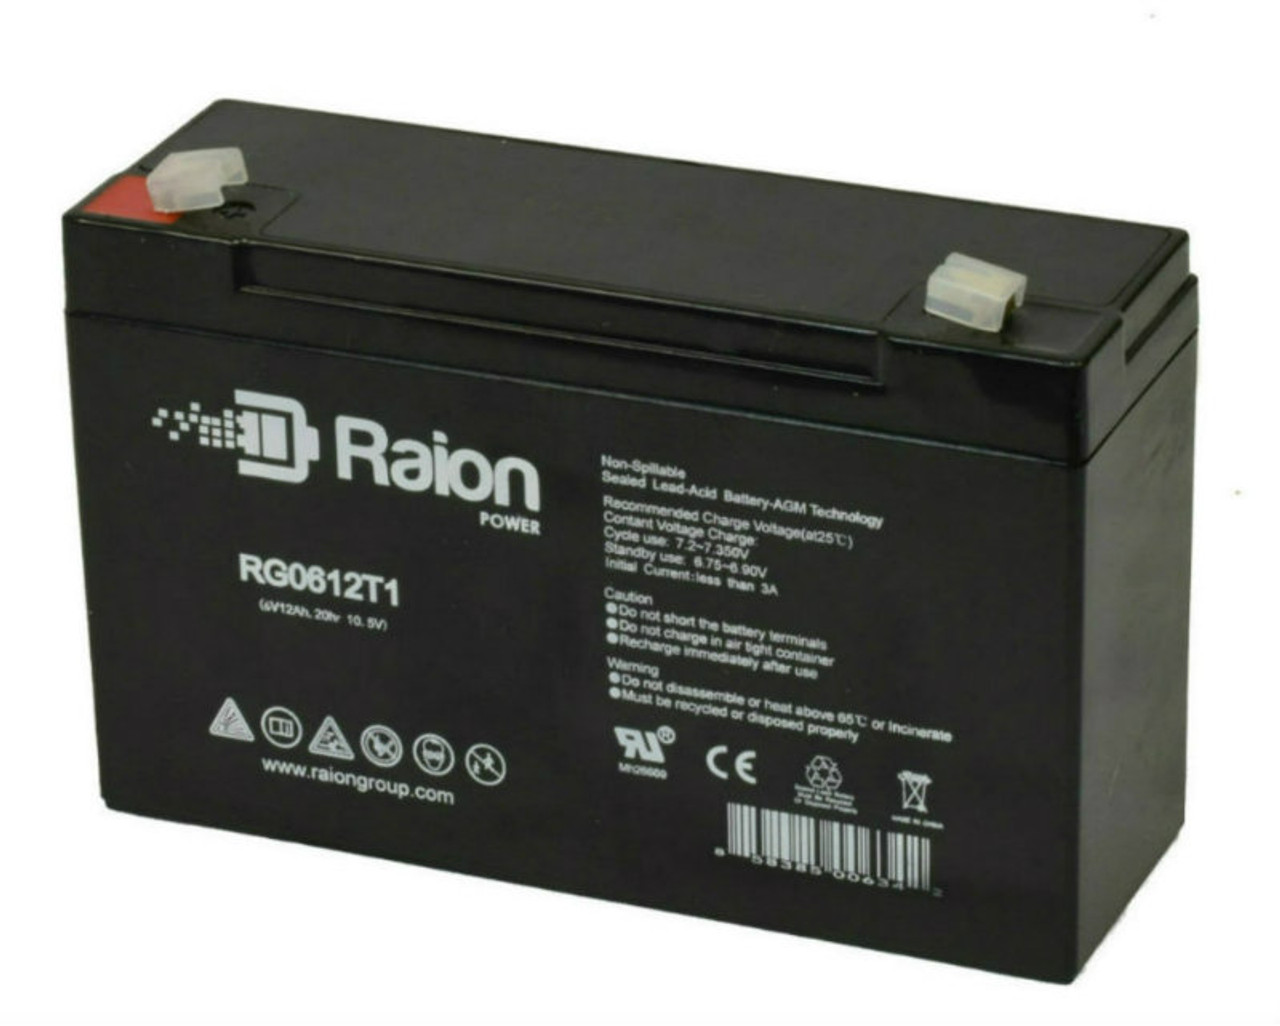 Raion Power RG06120T1 Replacement Battery Pack for Sonnenschein A506/10 S emergency light